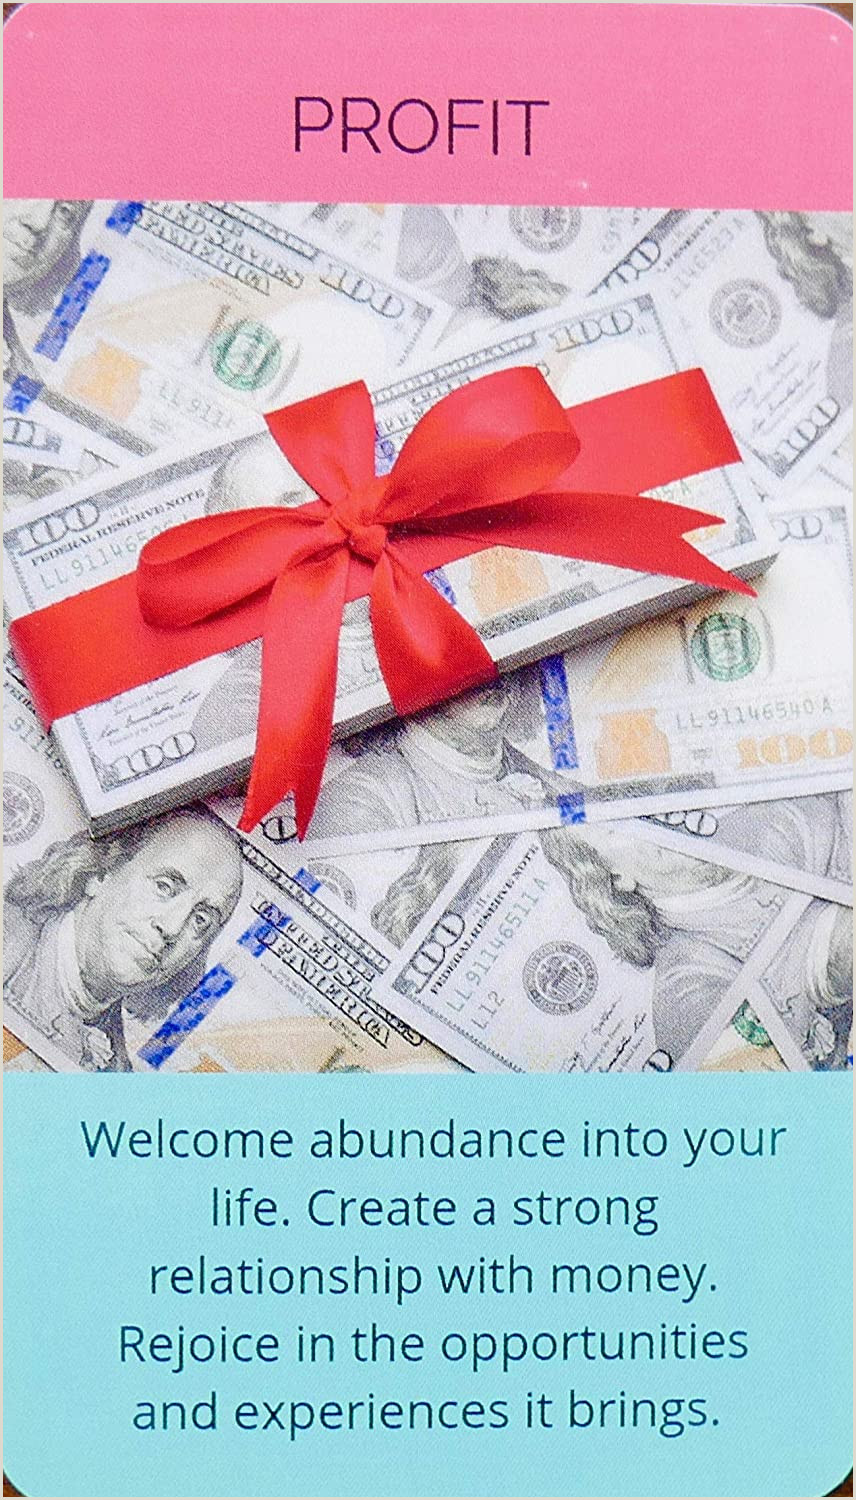 The Best Business Cards For Entrepreneuers Business And Money Oracle Cards Divine Feminine Entrepreneur Oracle Deck 70 Cards Of Powerful Guidance & Strategies To Create Success Abundance And